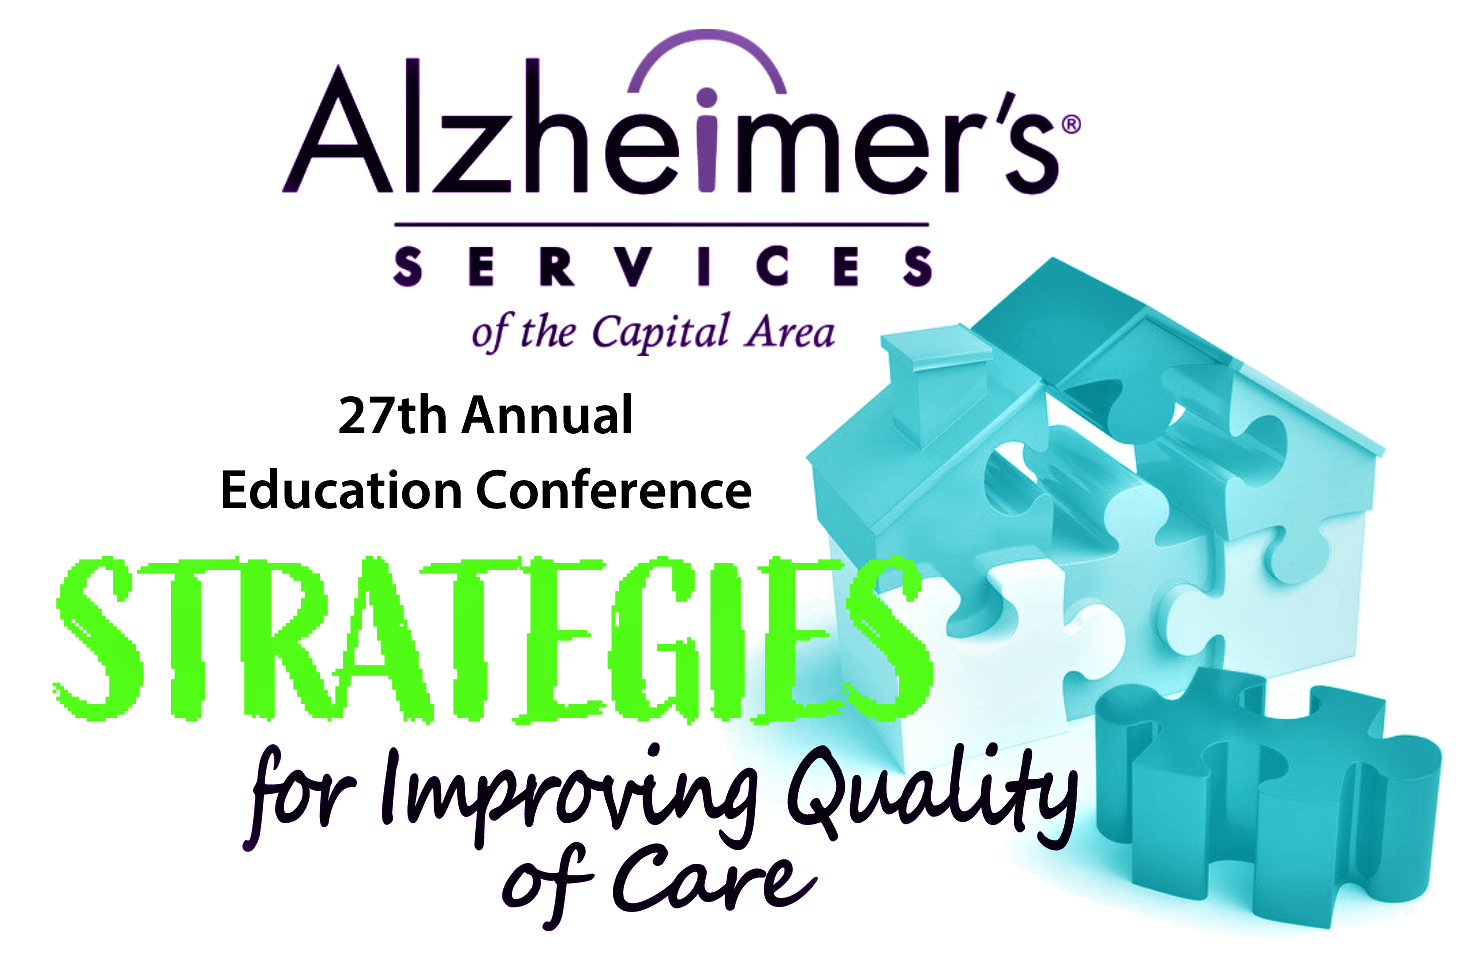 Healthcare Professional Registration: Alzheimer's Services of the Capital Area